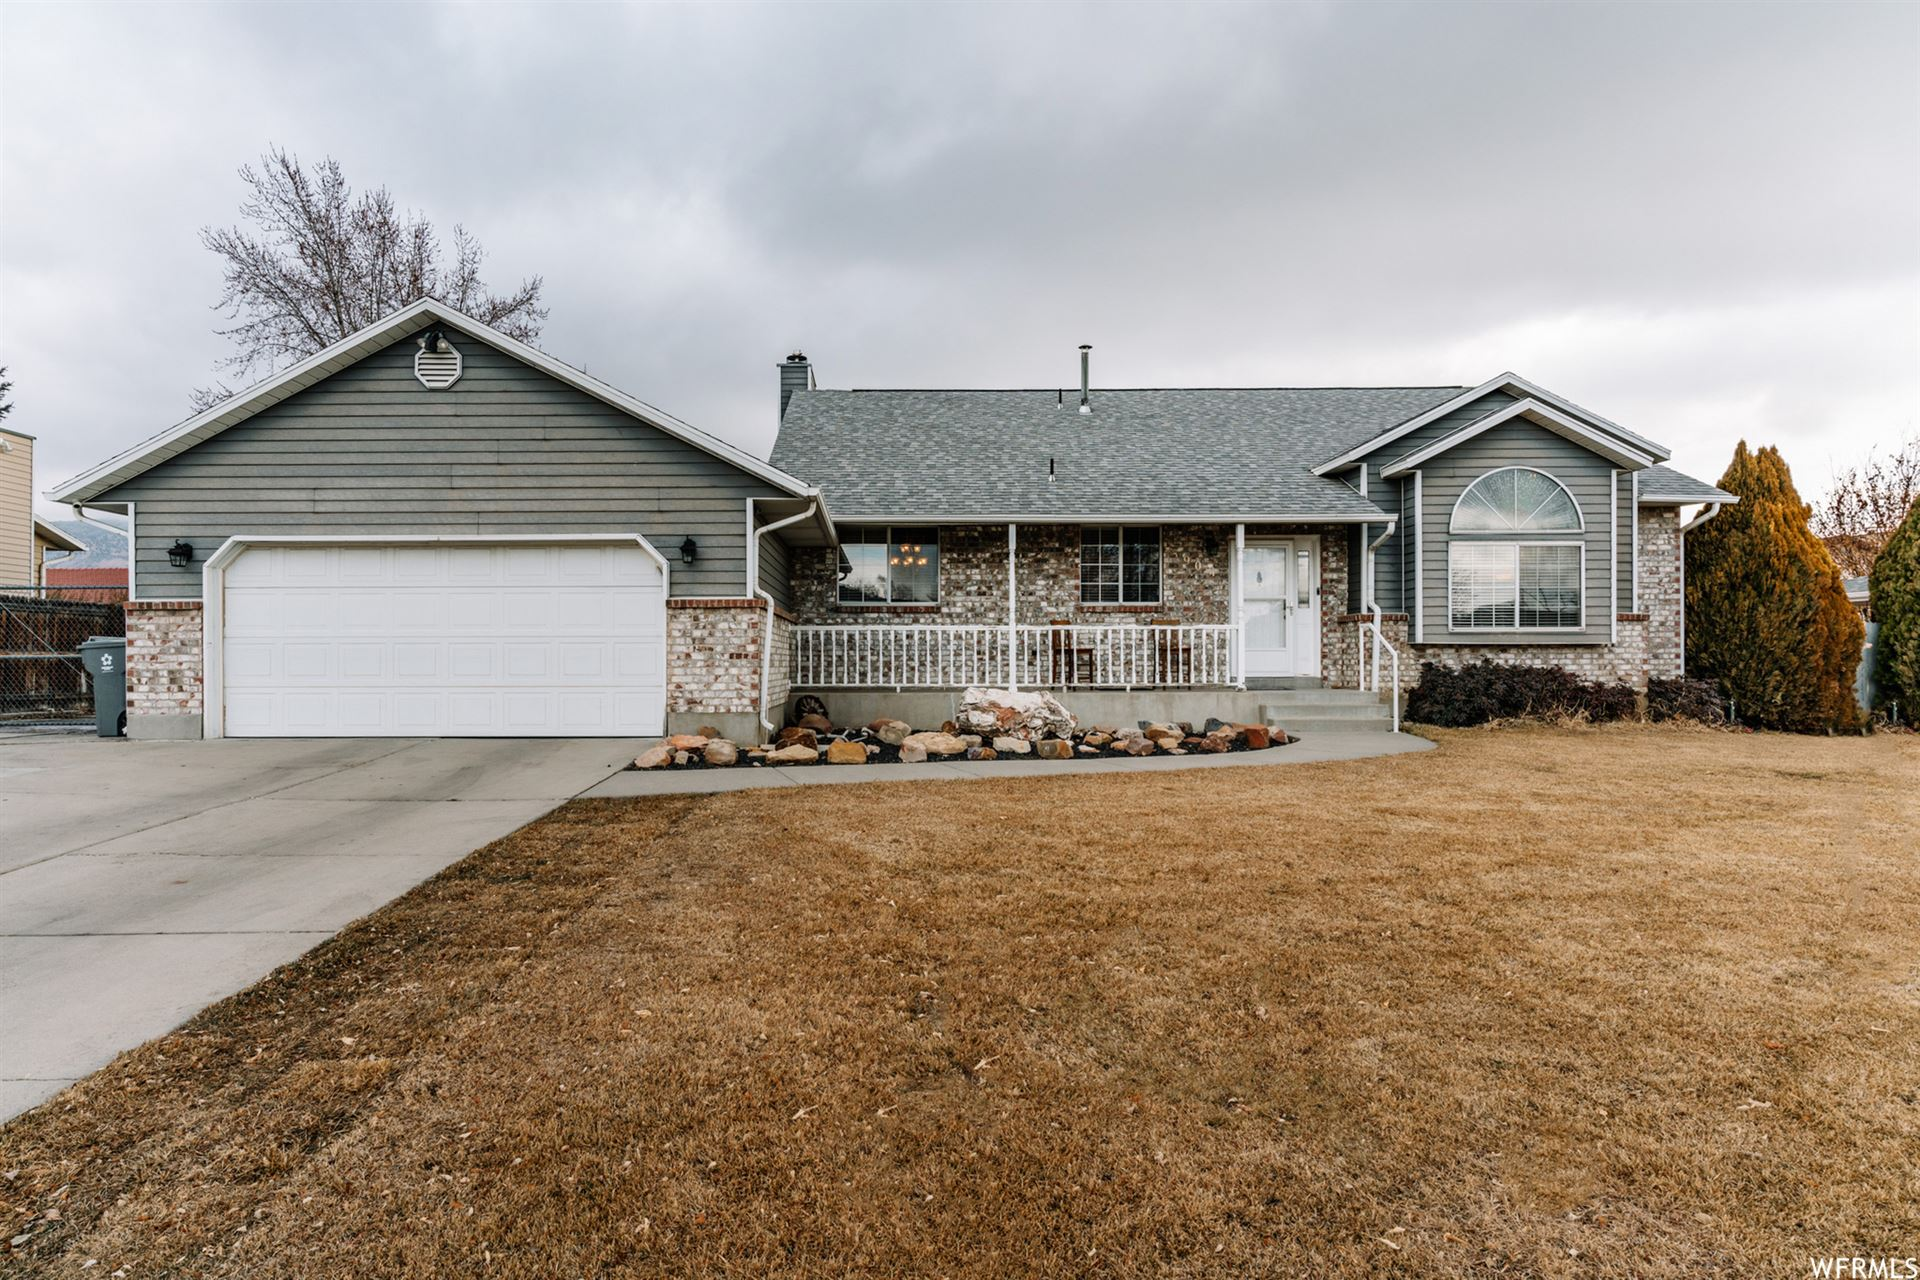 Photo of 904 N 290 E, American Fork, UT 84003 (MLS # 1720781)